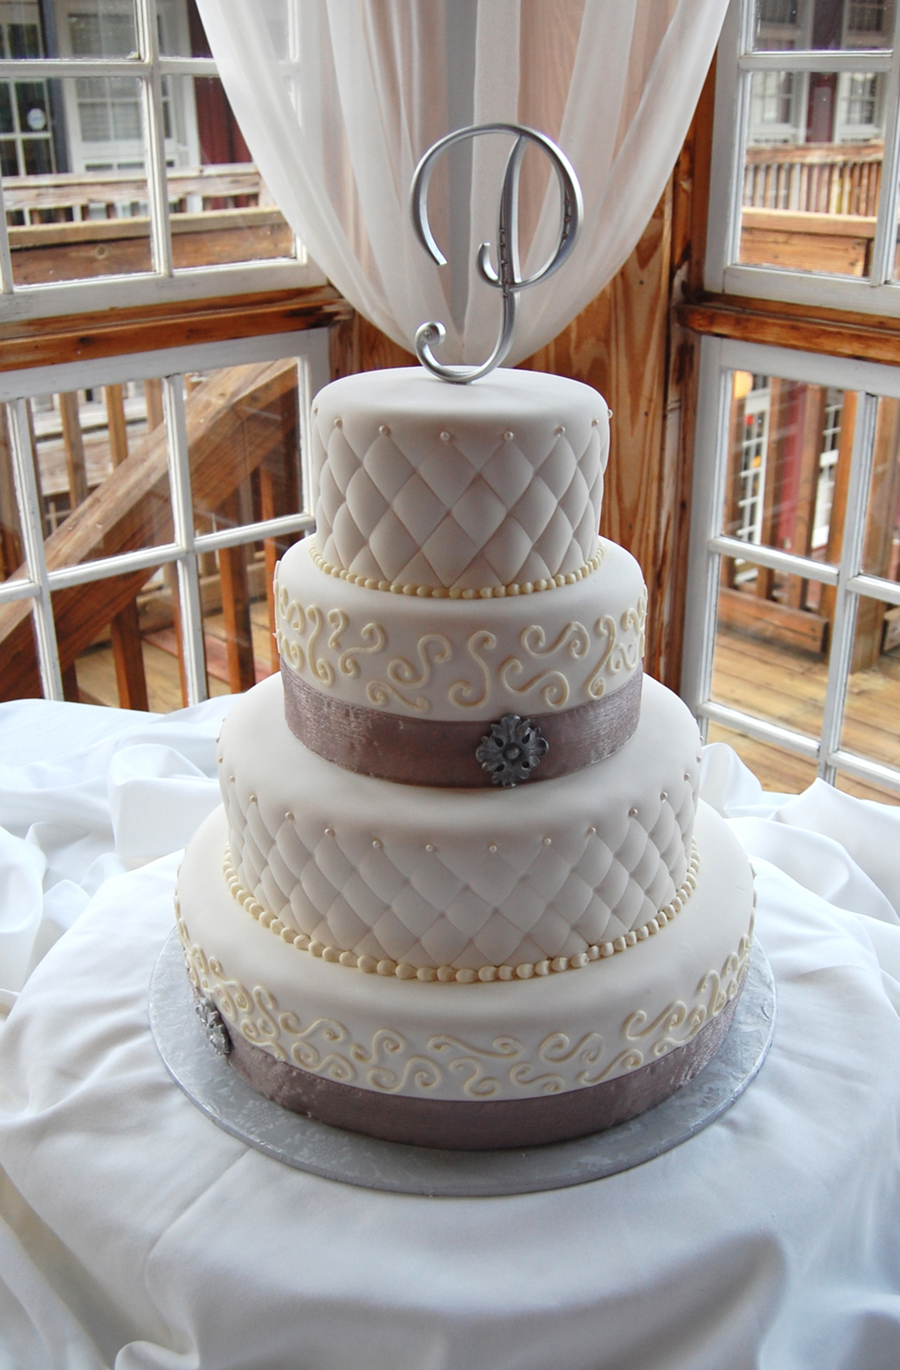 Fondant And Buttercream Wedding Cake Round With Pewter Accents And Ribbon Quilted Texture  on Cake Central